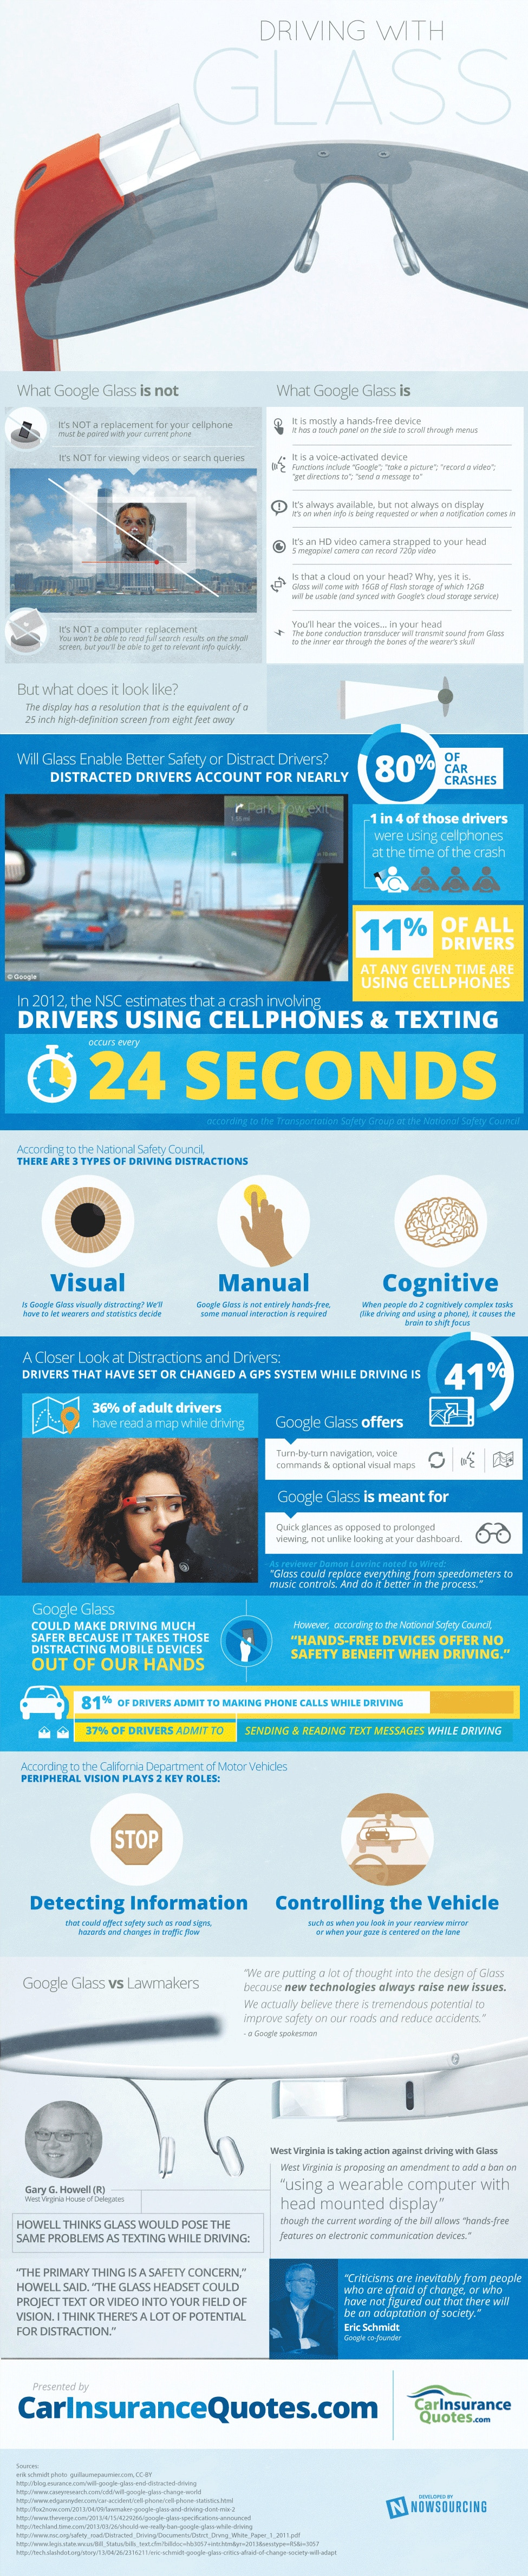 How Google Glass Will Affect Our Driving Experience [Infographic]